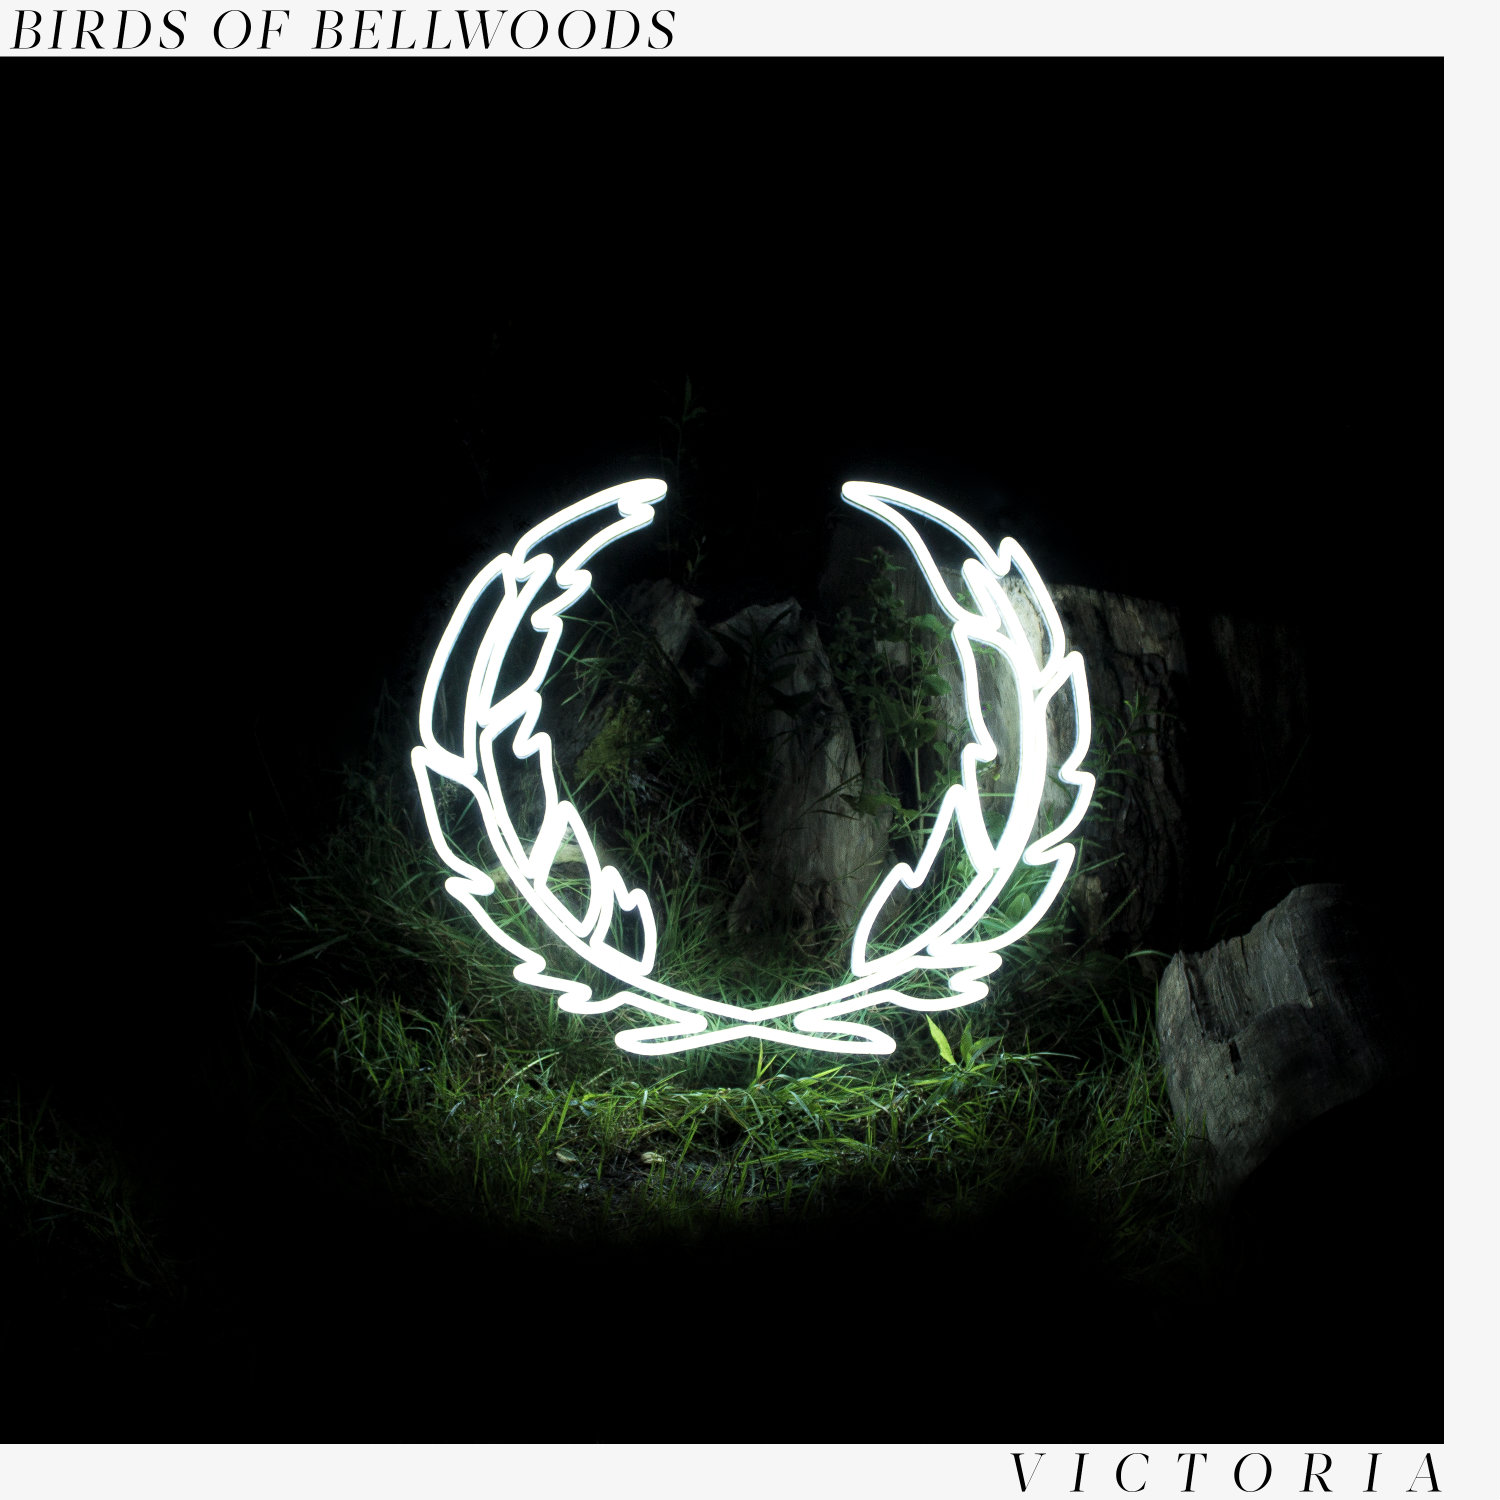 Birds of Bellwoods Detail Debut Album 'Victoria'